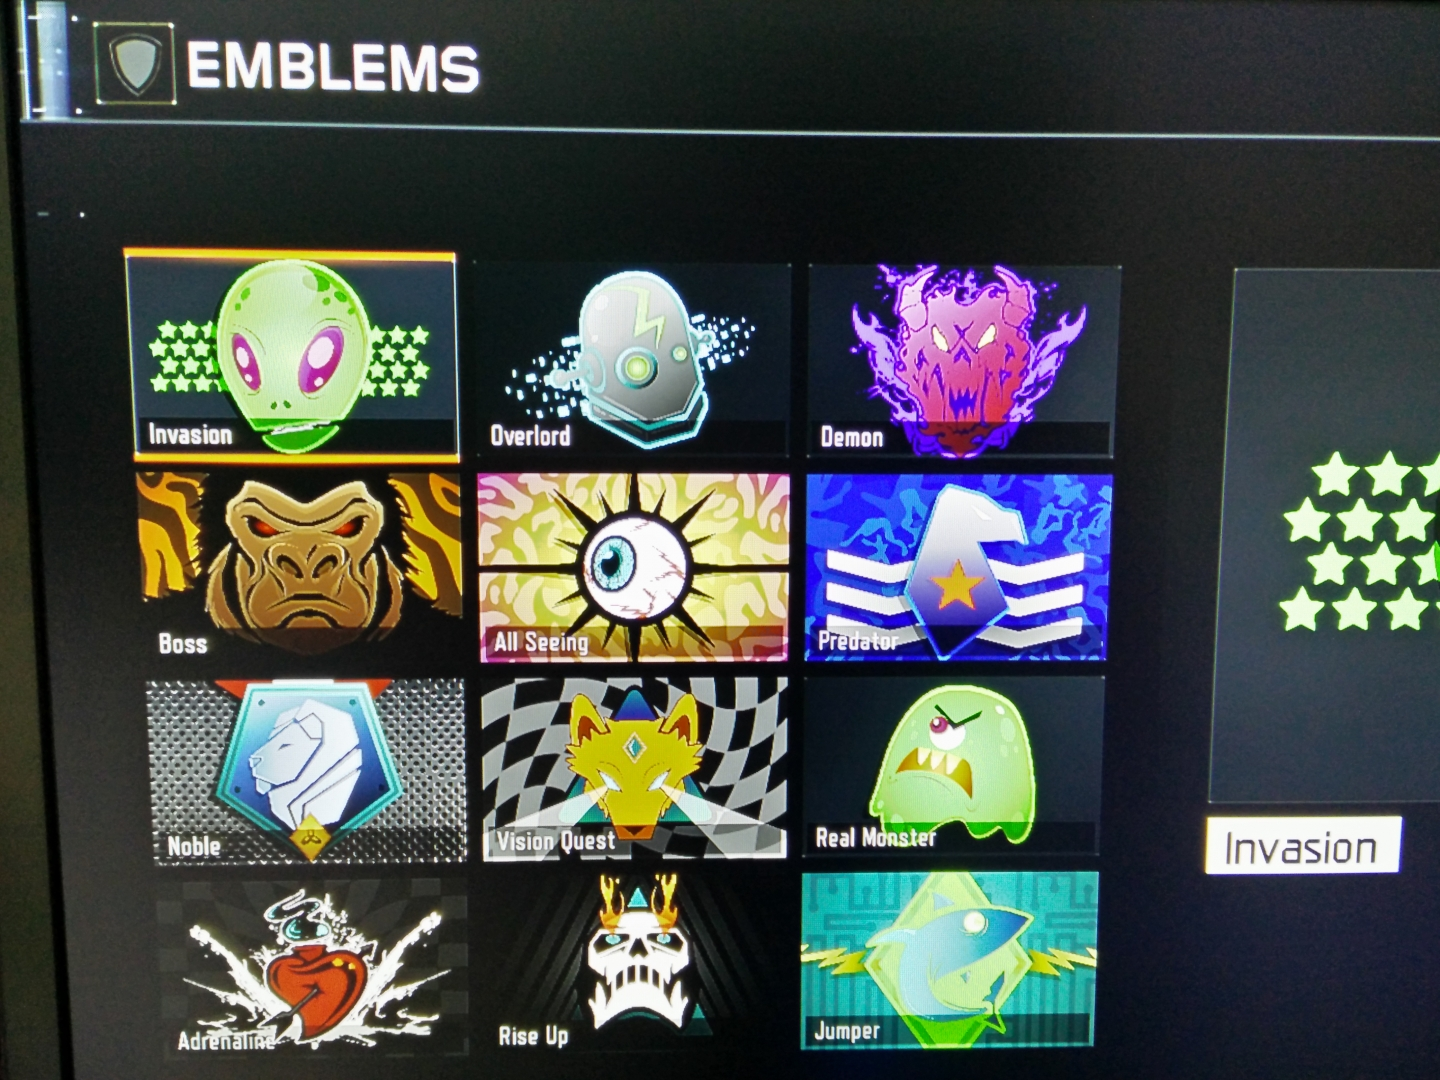 Call Of Duty Emblems - Free Photo and Wallpaper